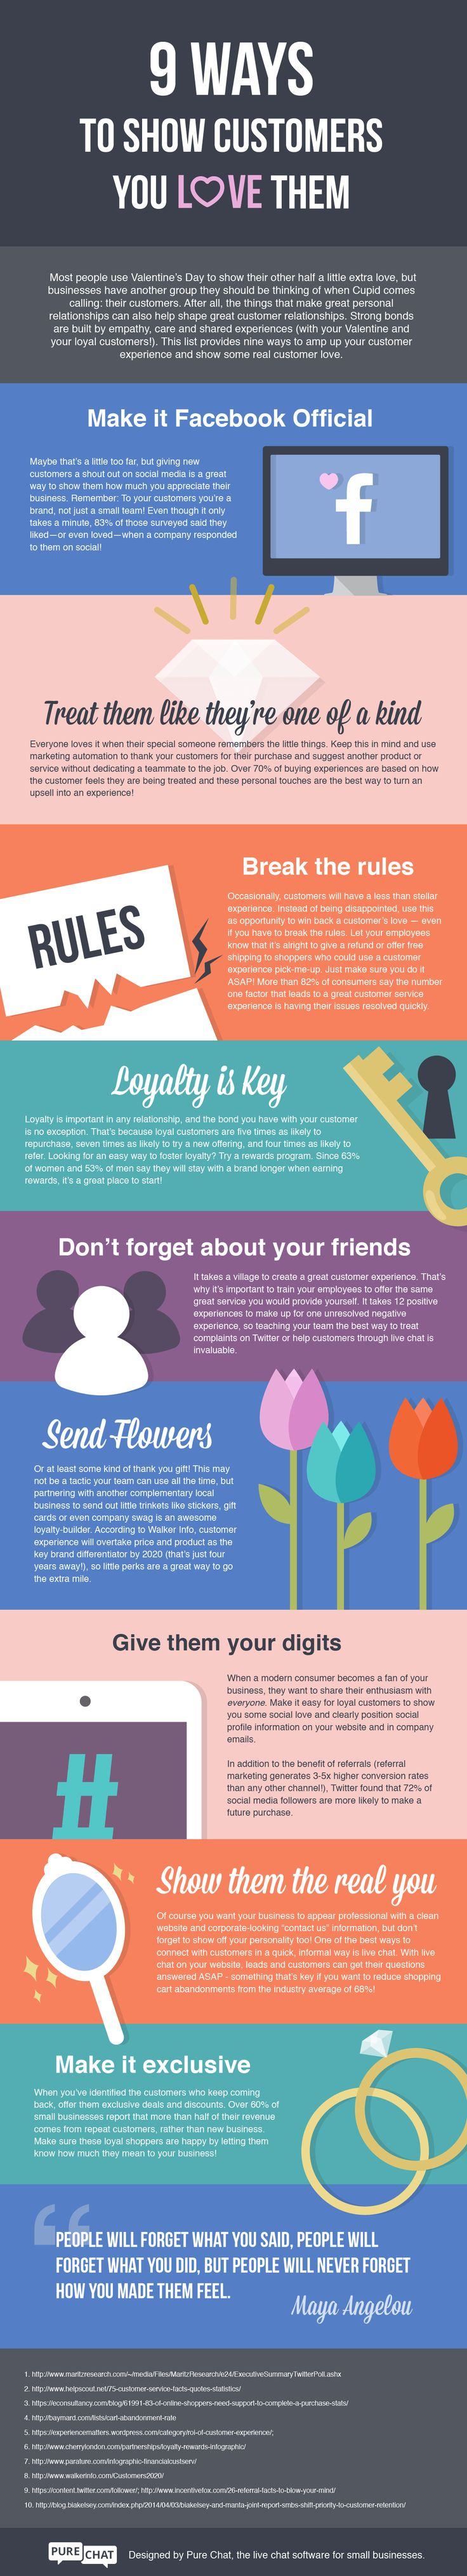 Great strategies to use to make customers happy and show them appreciation.